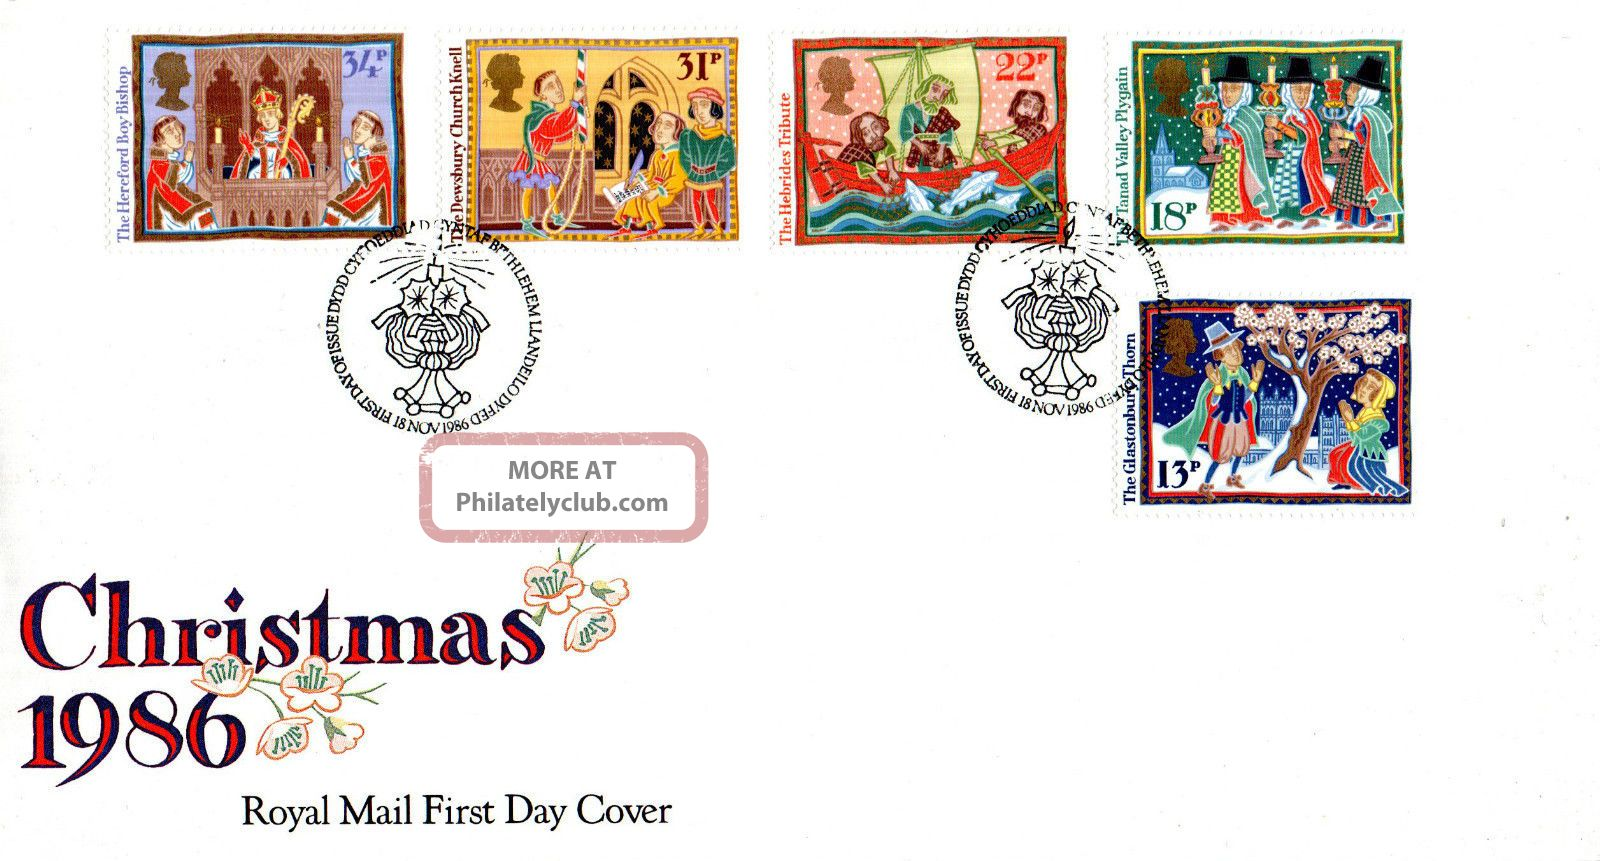 18 November 1986 Christmas Royal Mail First Day Cover Bethlehem Shs (u) Topical Stamps photo